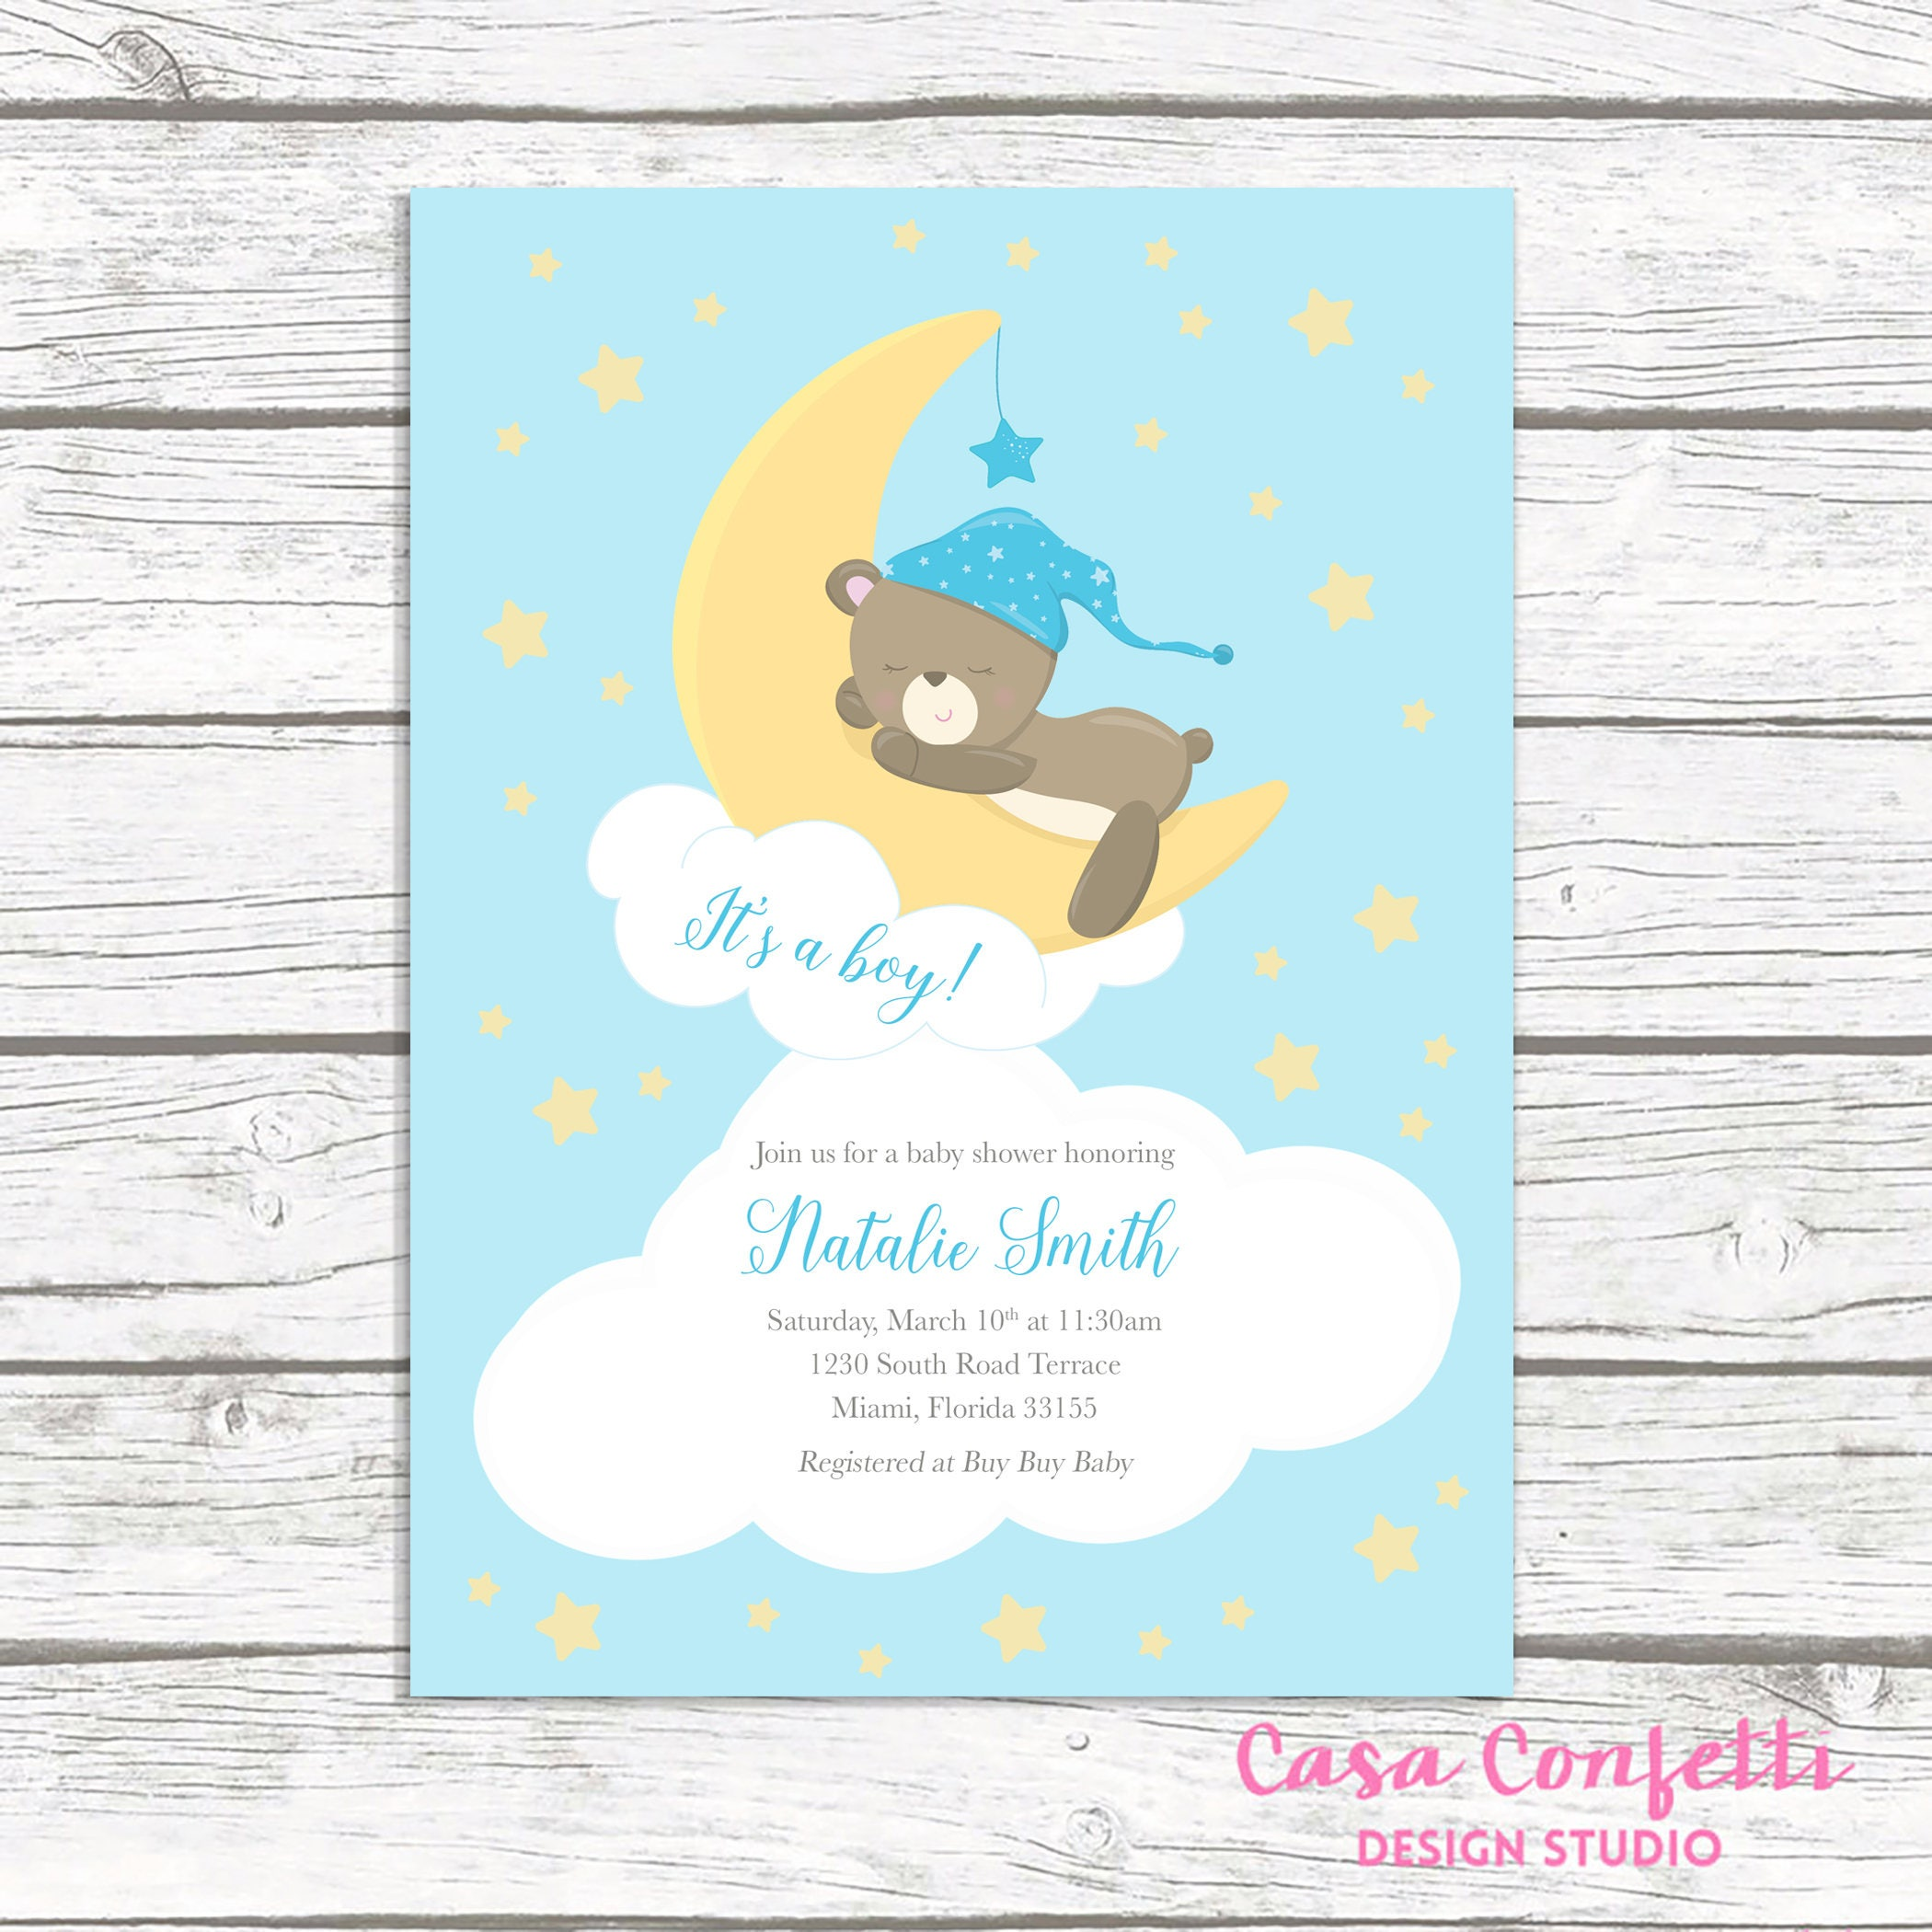 Moon baby shower invitation boy teddy bear baby shower invitation moon baby shower invitation boy teddy bear baby shower invitation its a boy baby shower invitation moon and stars baby shower invite filmwisefo Choice Image